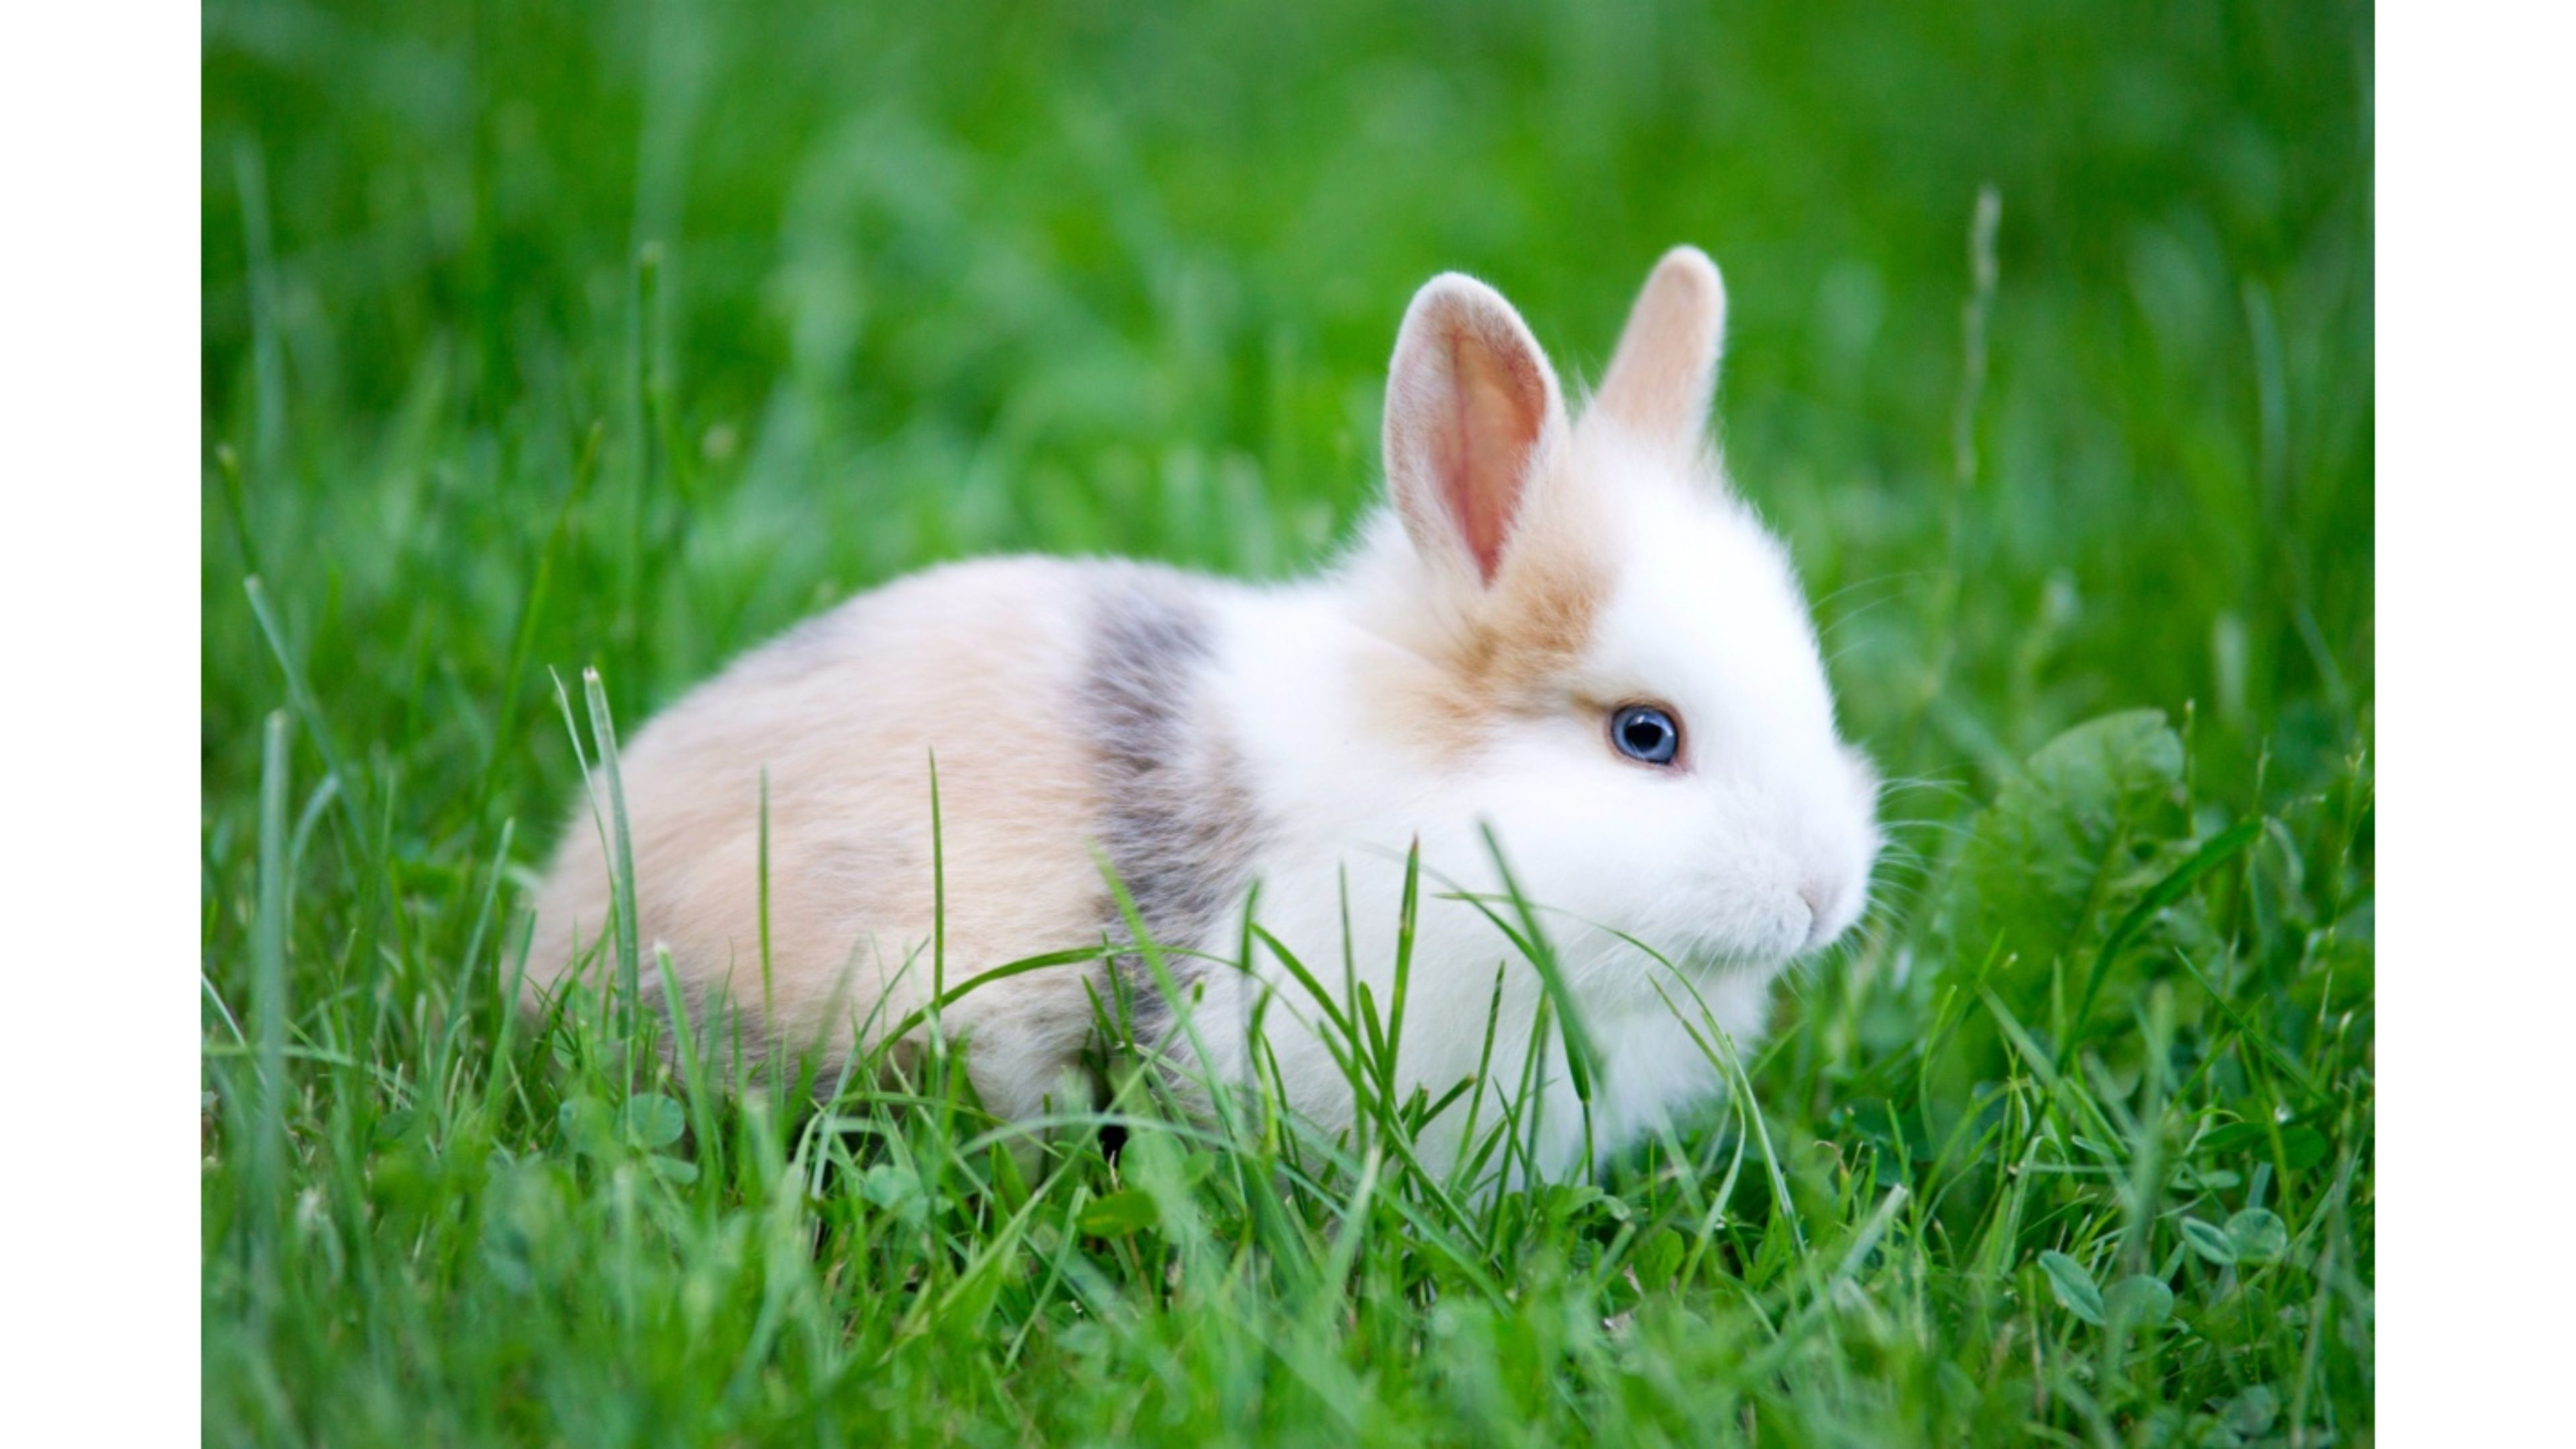 Cute White Baby Rabbits Wallpapers Cute Bunnies Wallpaper 65 Images